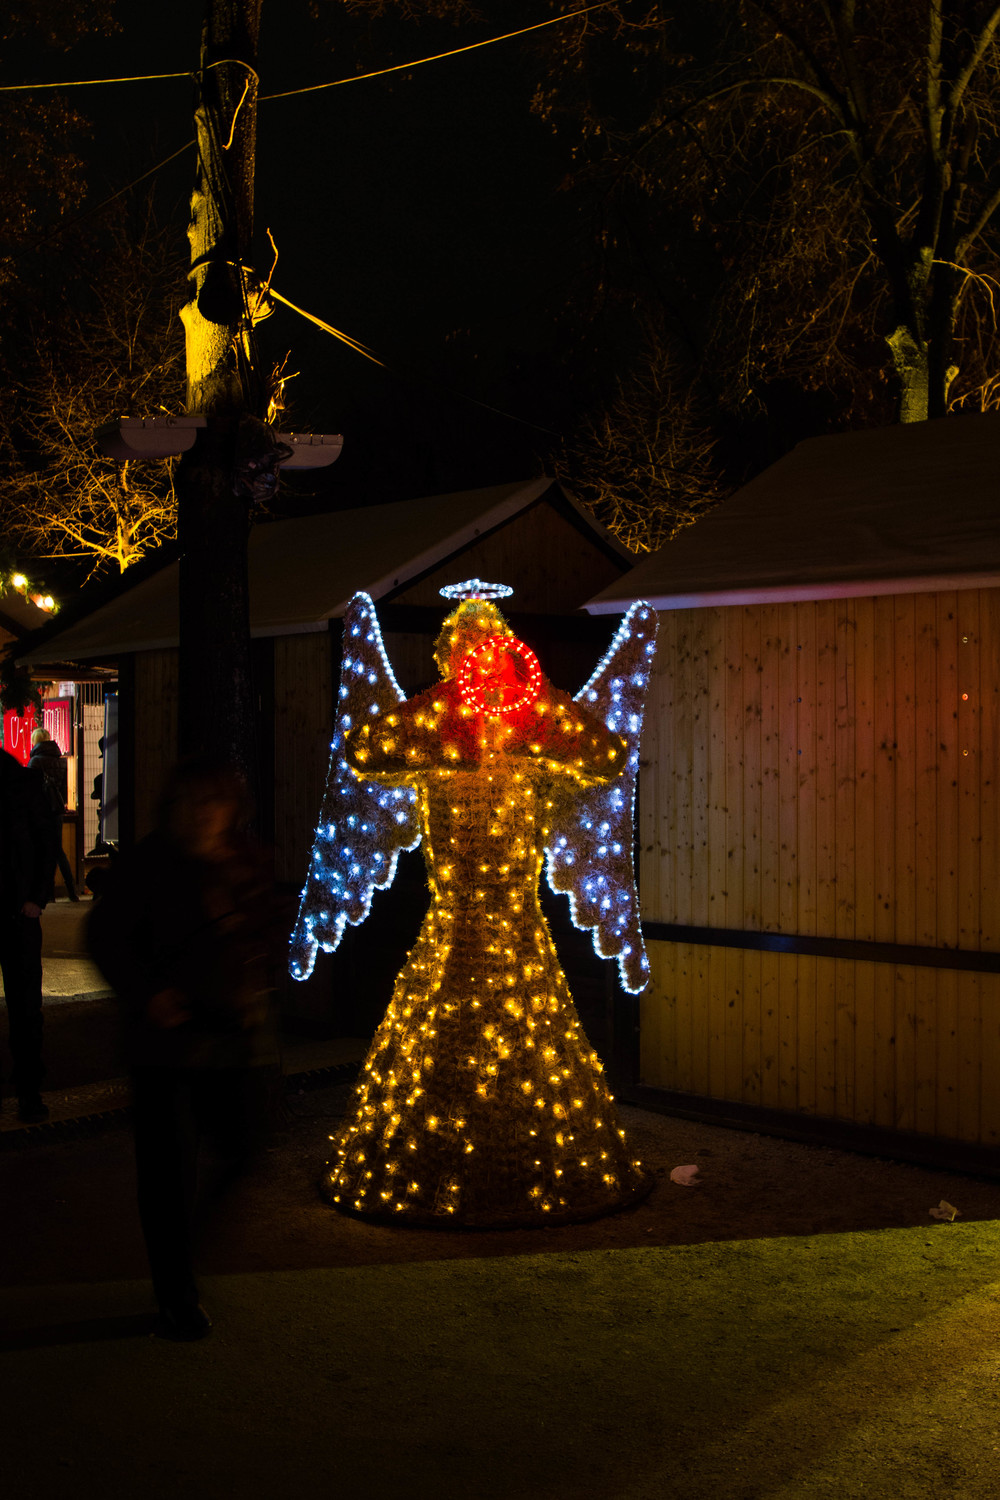 Light Angel 2 - Charlottenburg Markets, Berlin, Germany 02/12/2015